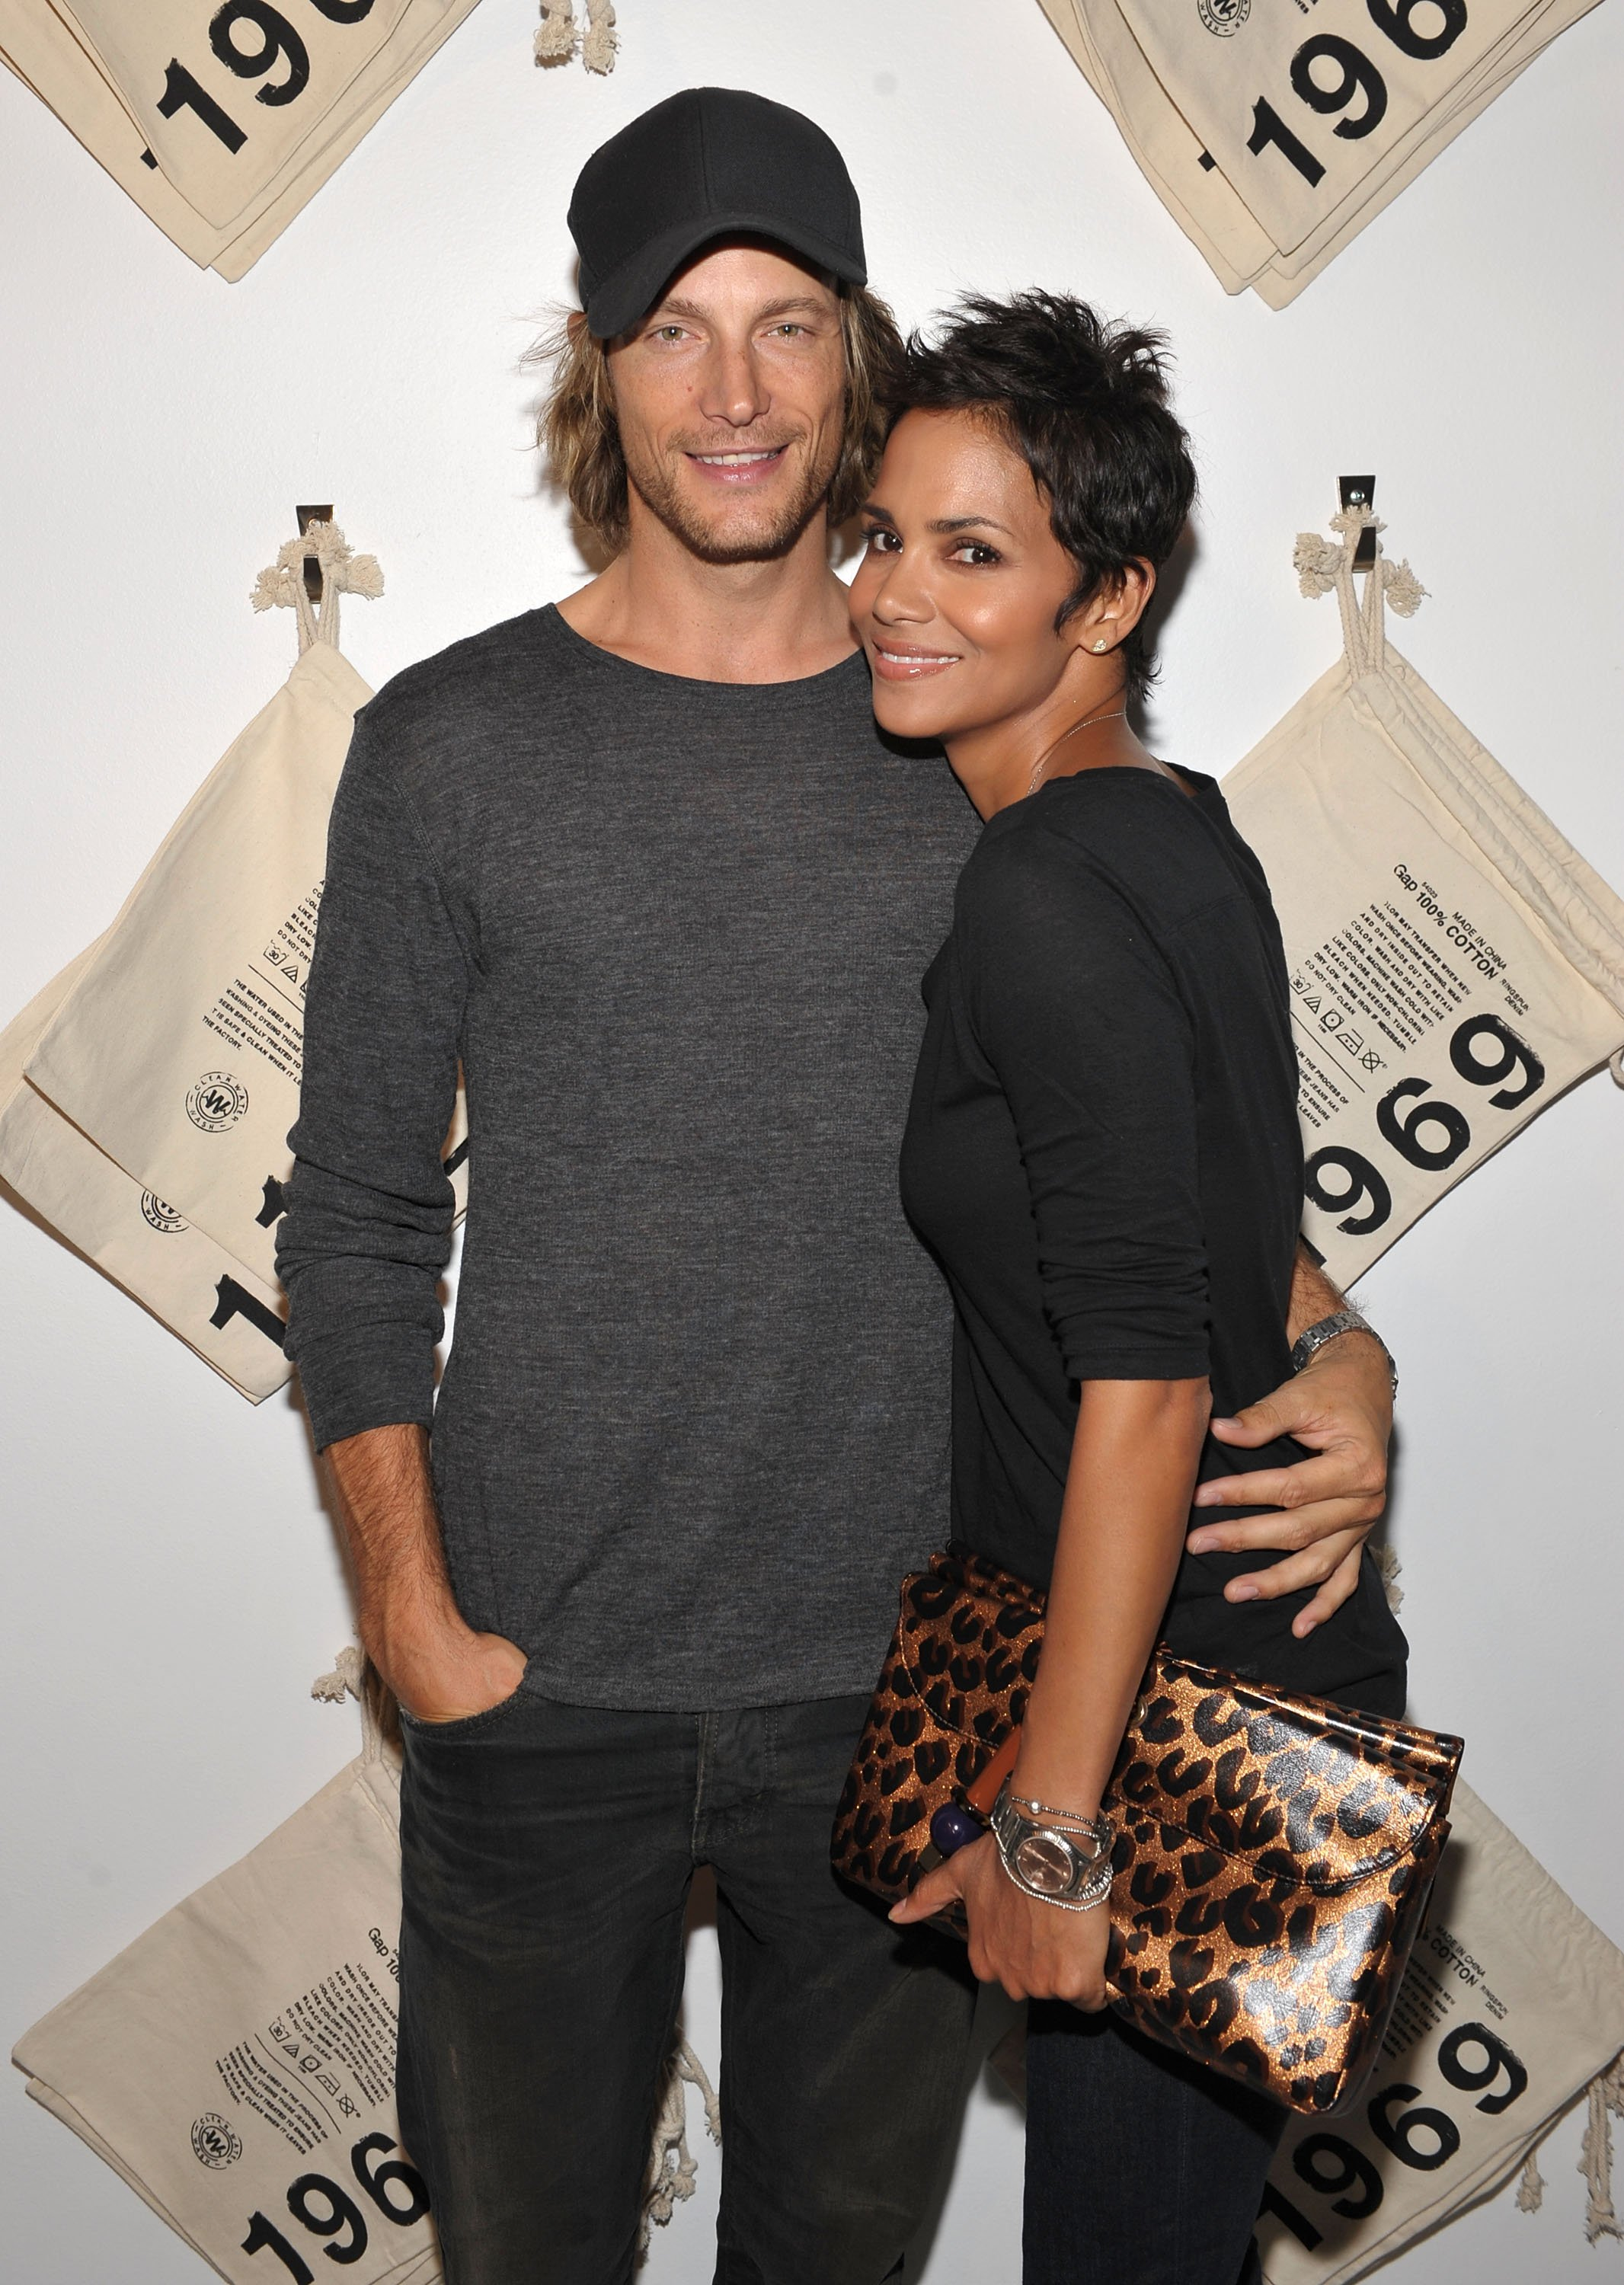 Halle Berry and Gabriel Aubry at the launch of Gap's 1969 Jean Shop on Robertson Blvd on August 6, 2009 in West Hollywood, California.|Source: Getty Images